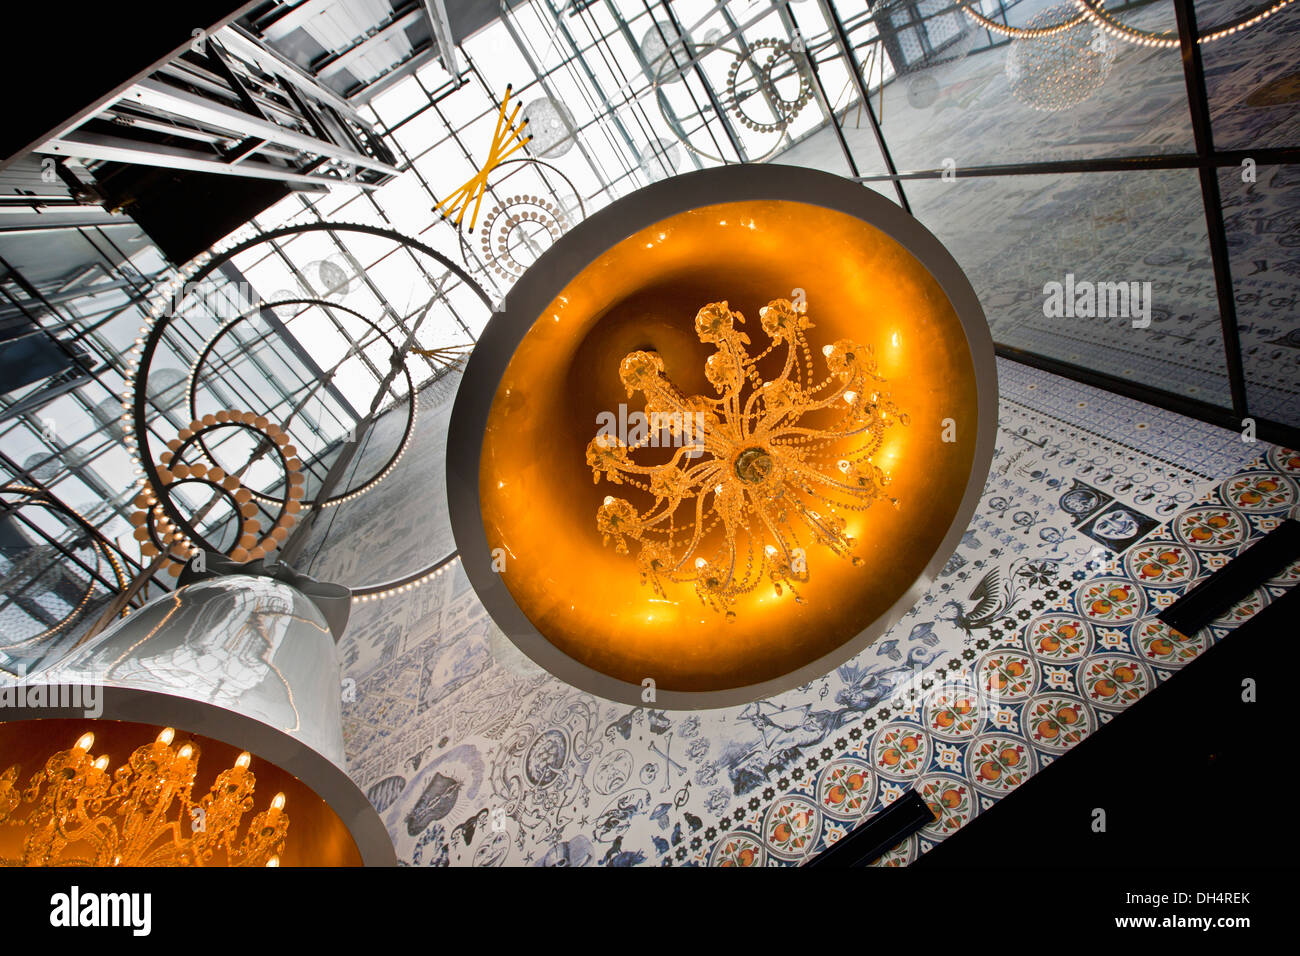 Netherlands, Amsterdam, Reception of hotel ANDAZ, designed by local architect and designer Marcel Wanders - Stock Image